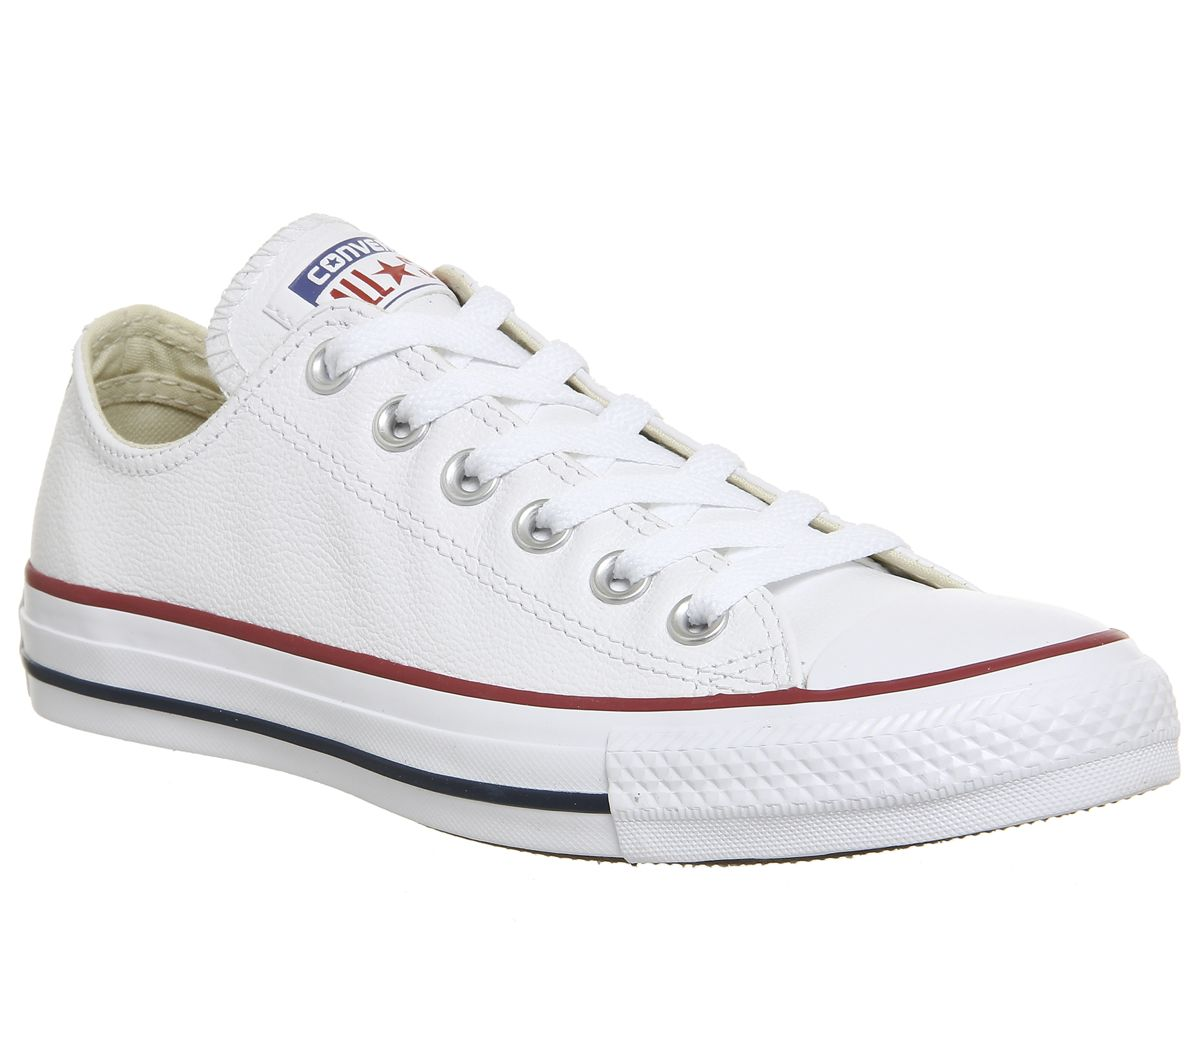 5385e244e696 Converse All Star Low Leather Optical White - Unisex Sports